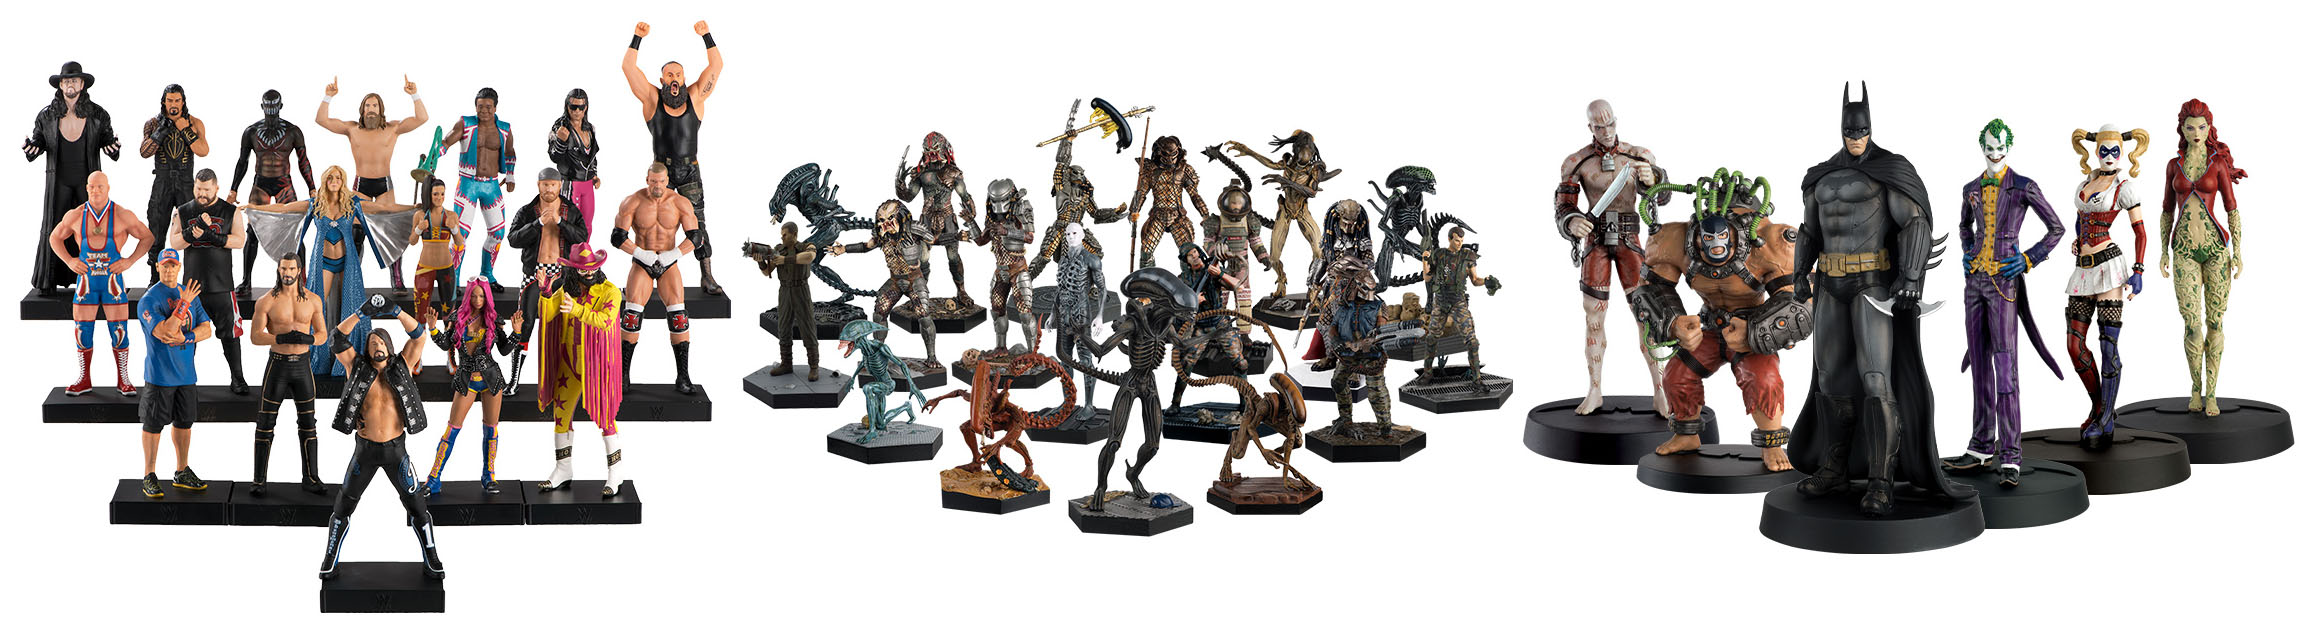 Eaglemoss Hero Collector Statues